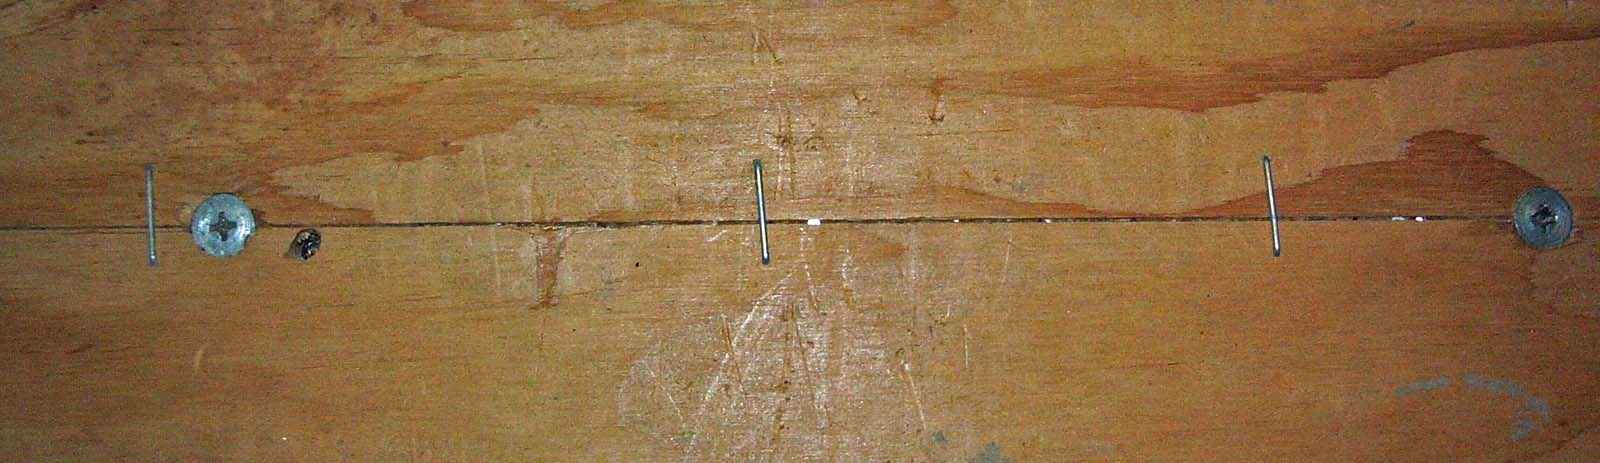 Click image for larger version  Name:96 airstream plywood floor seam.jpg Views:127 Size:109.4 KB ID:78414